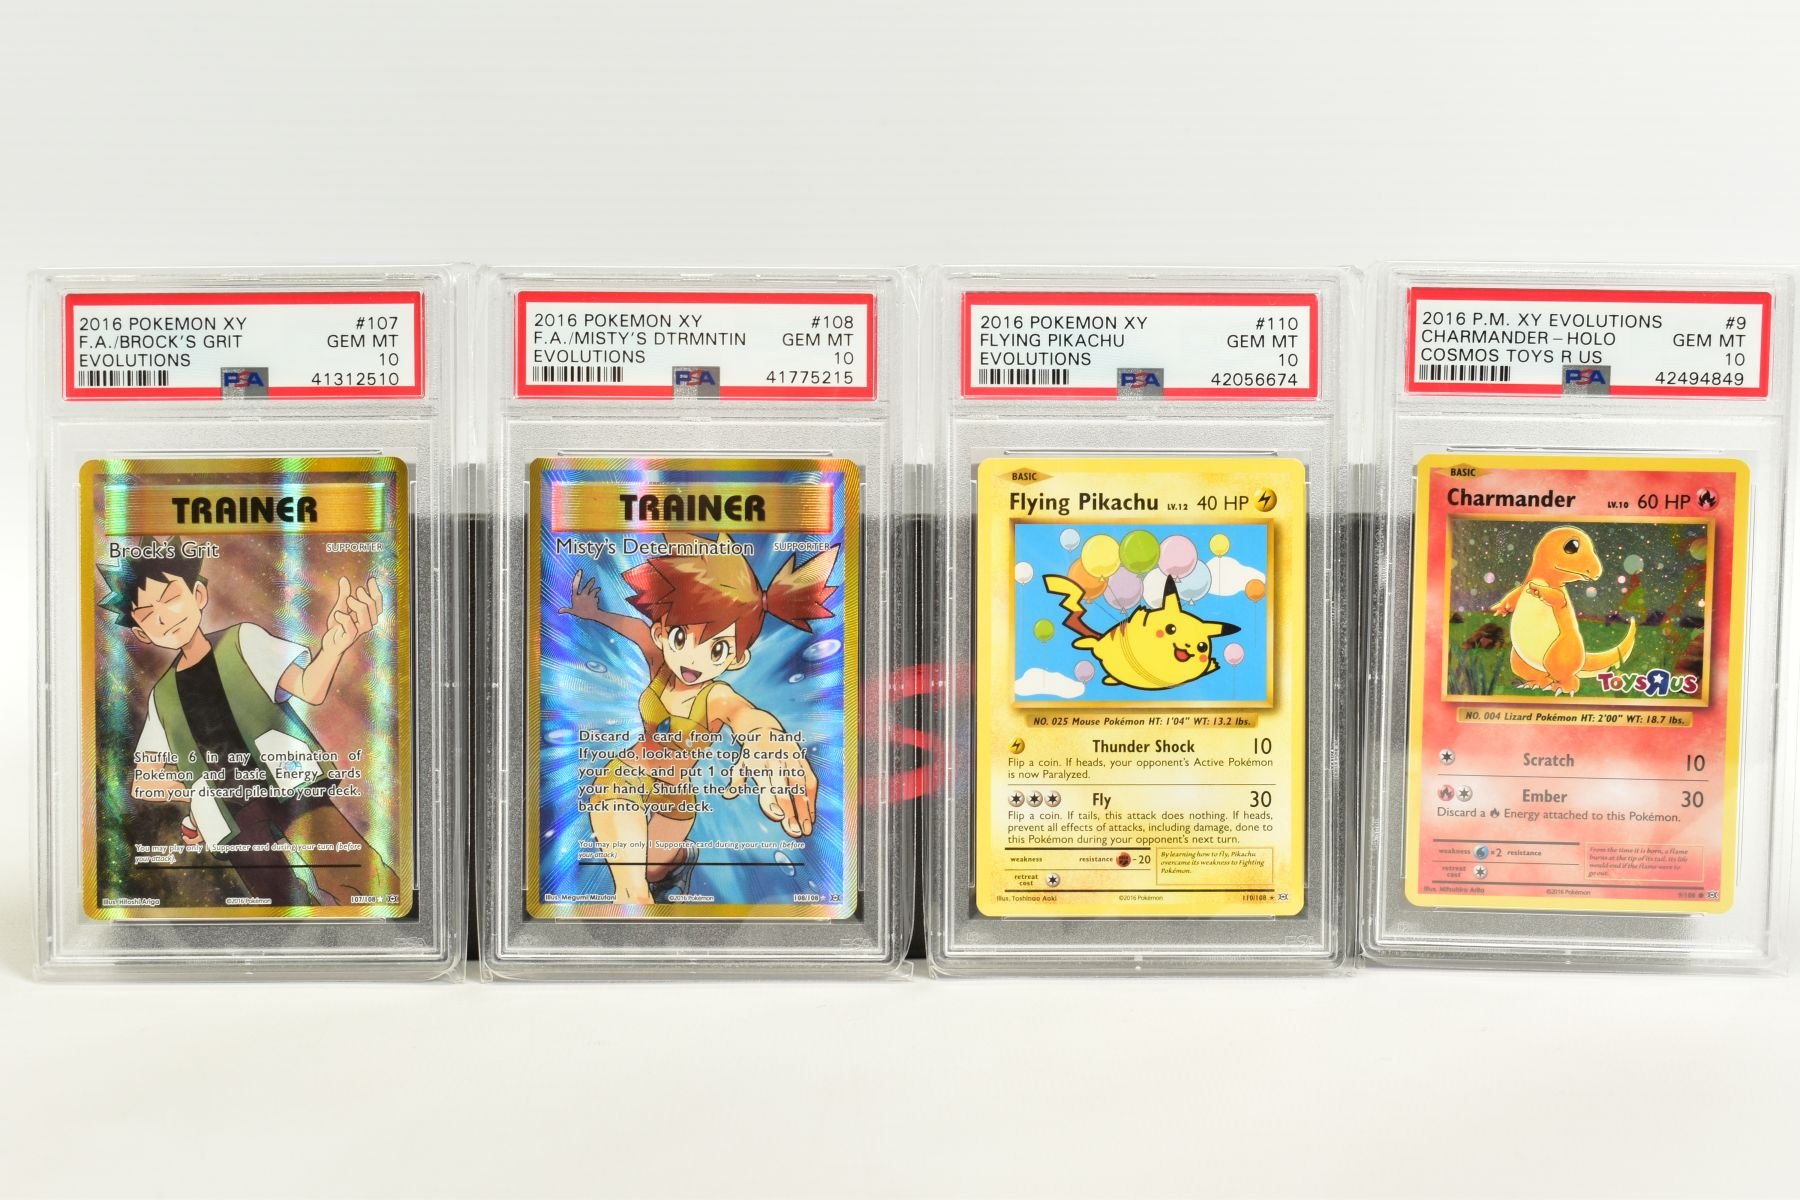 A QUANTITY OF PSA GRADED POKEMON XY EVOLUTIONS SET CARDS, all are graded GEM MINT 10 and are - Image 8 of 10